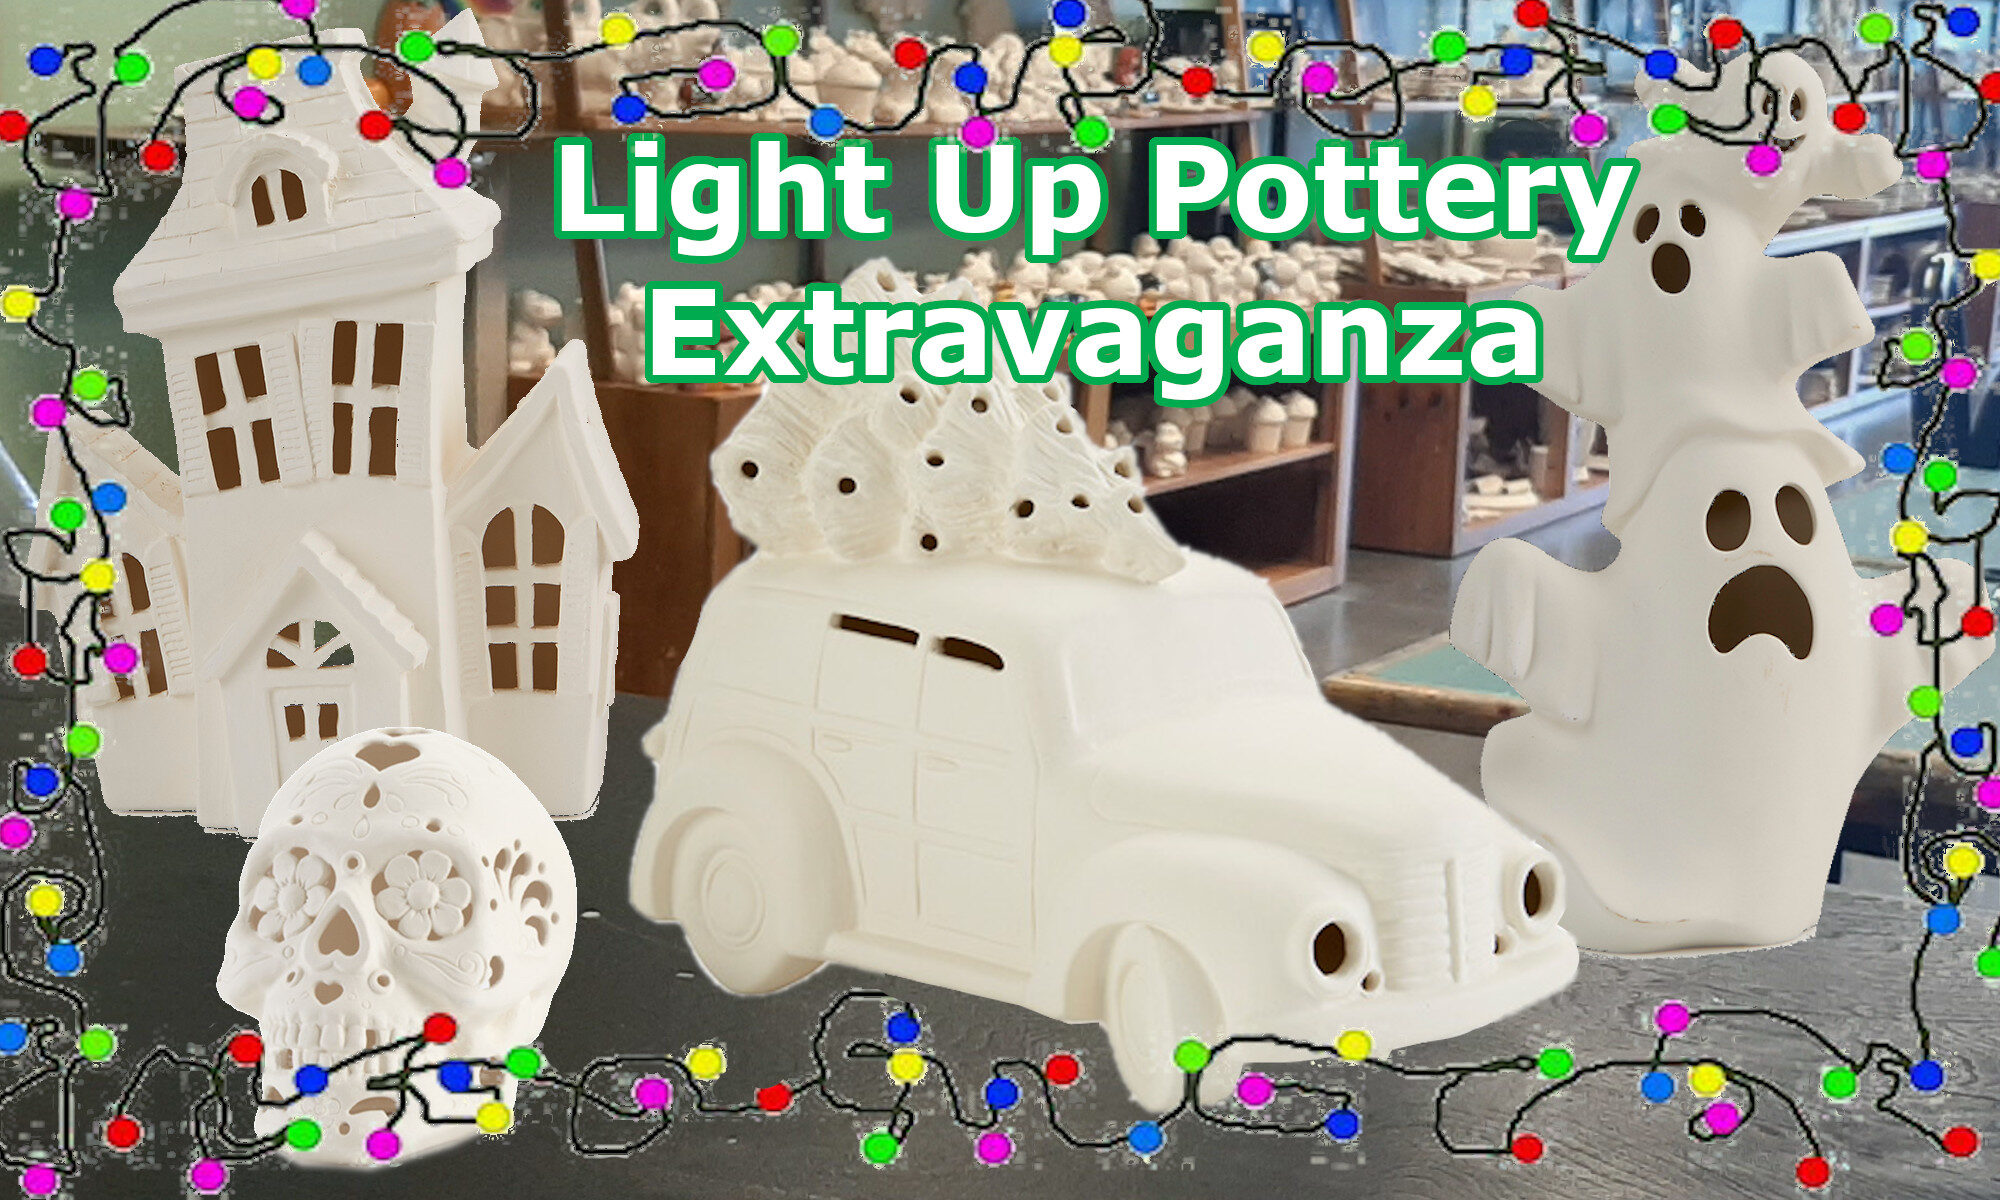 Light Up Pottery Extravaganza